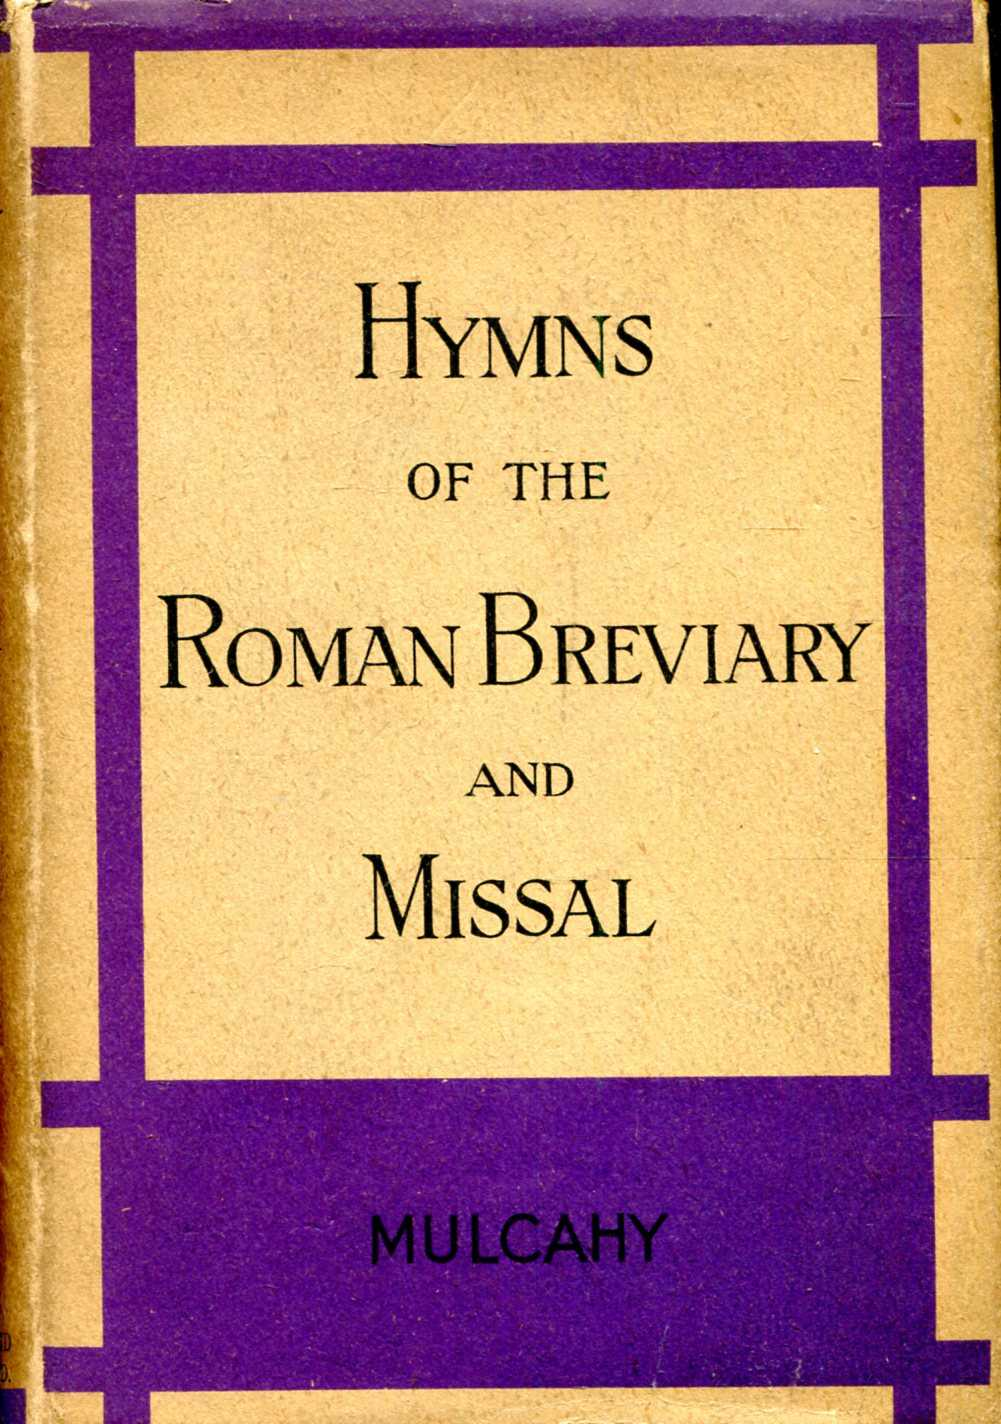 Image for Hymns of the Roman Breviary and Missal, a metrical translation